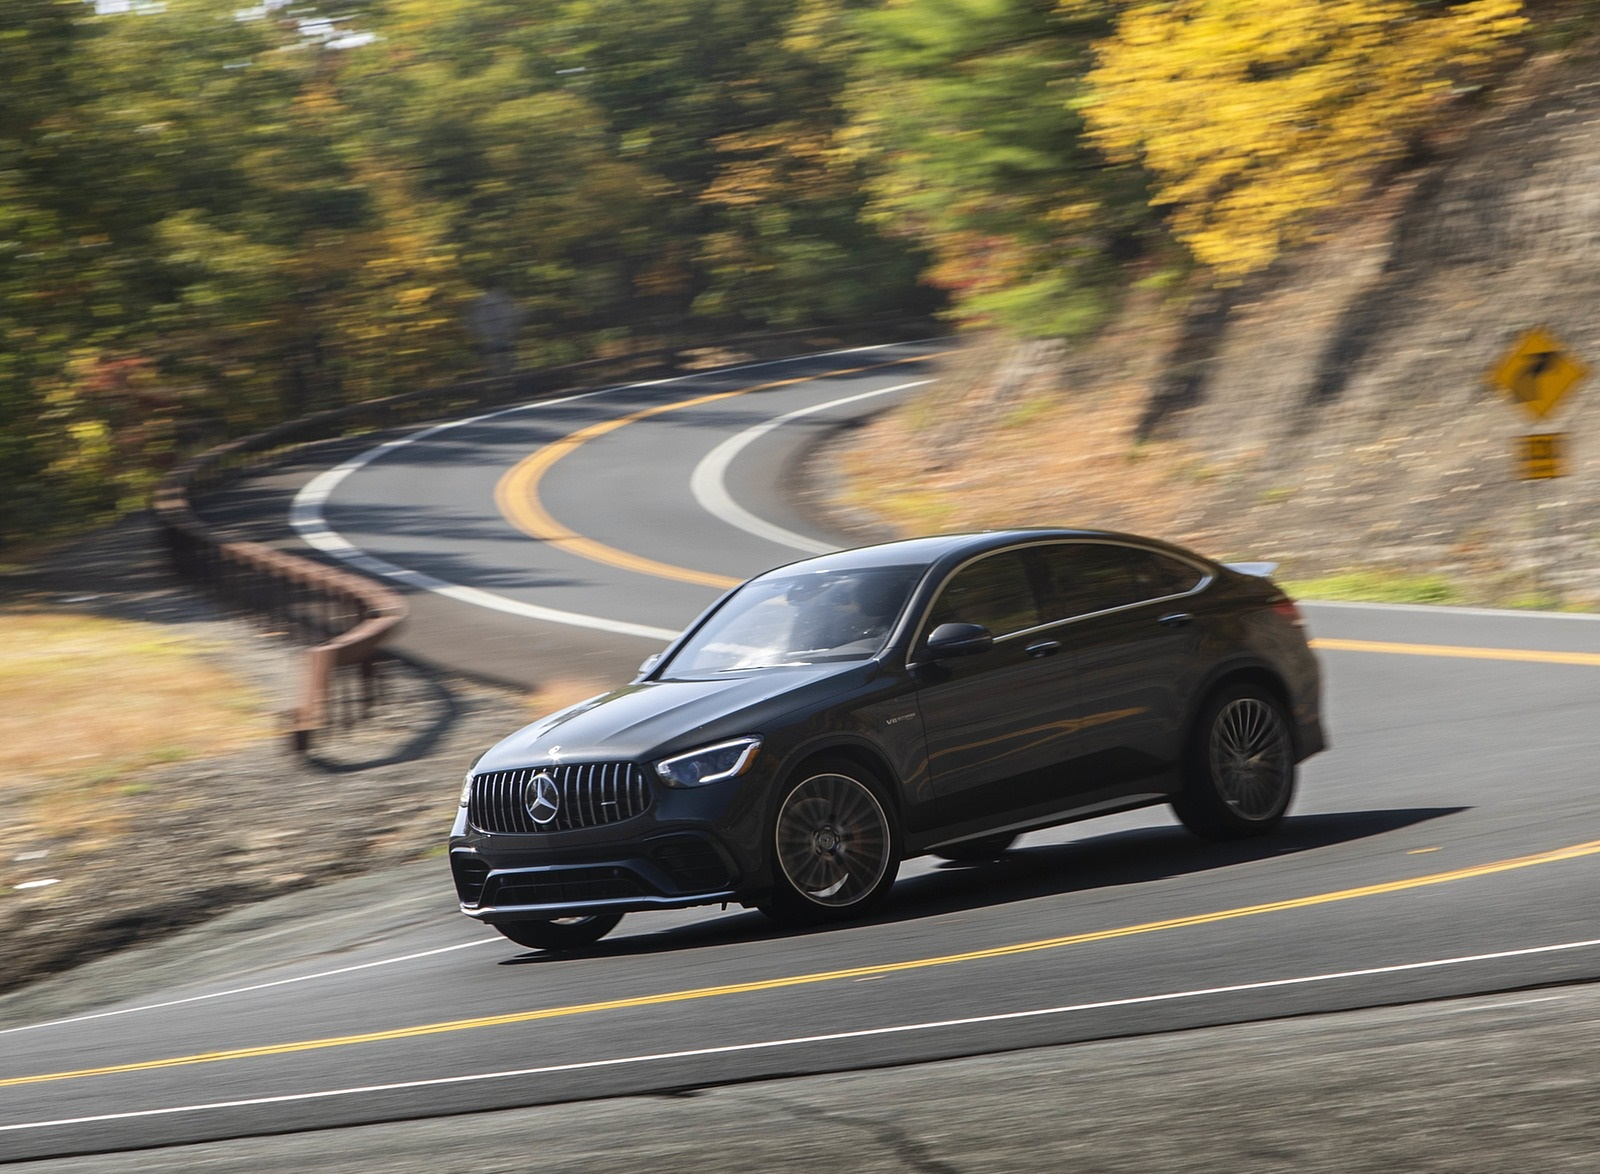 2020 Mercedes-AMG GLC 63 S Coupe (US-Spec) Front Three-Quarter Wallpapers (7)